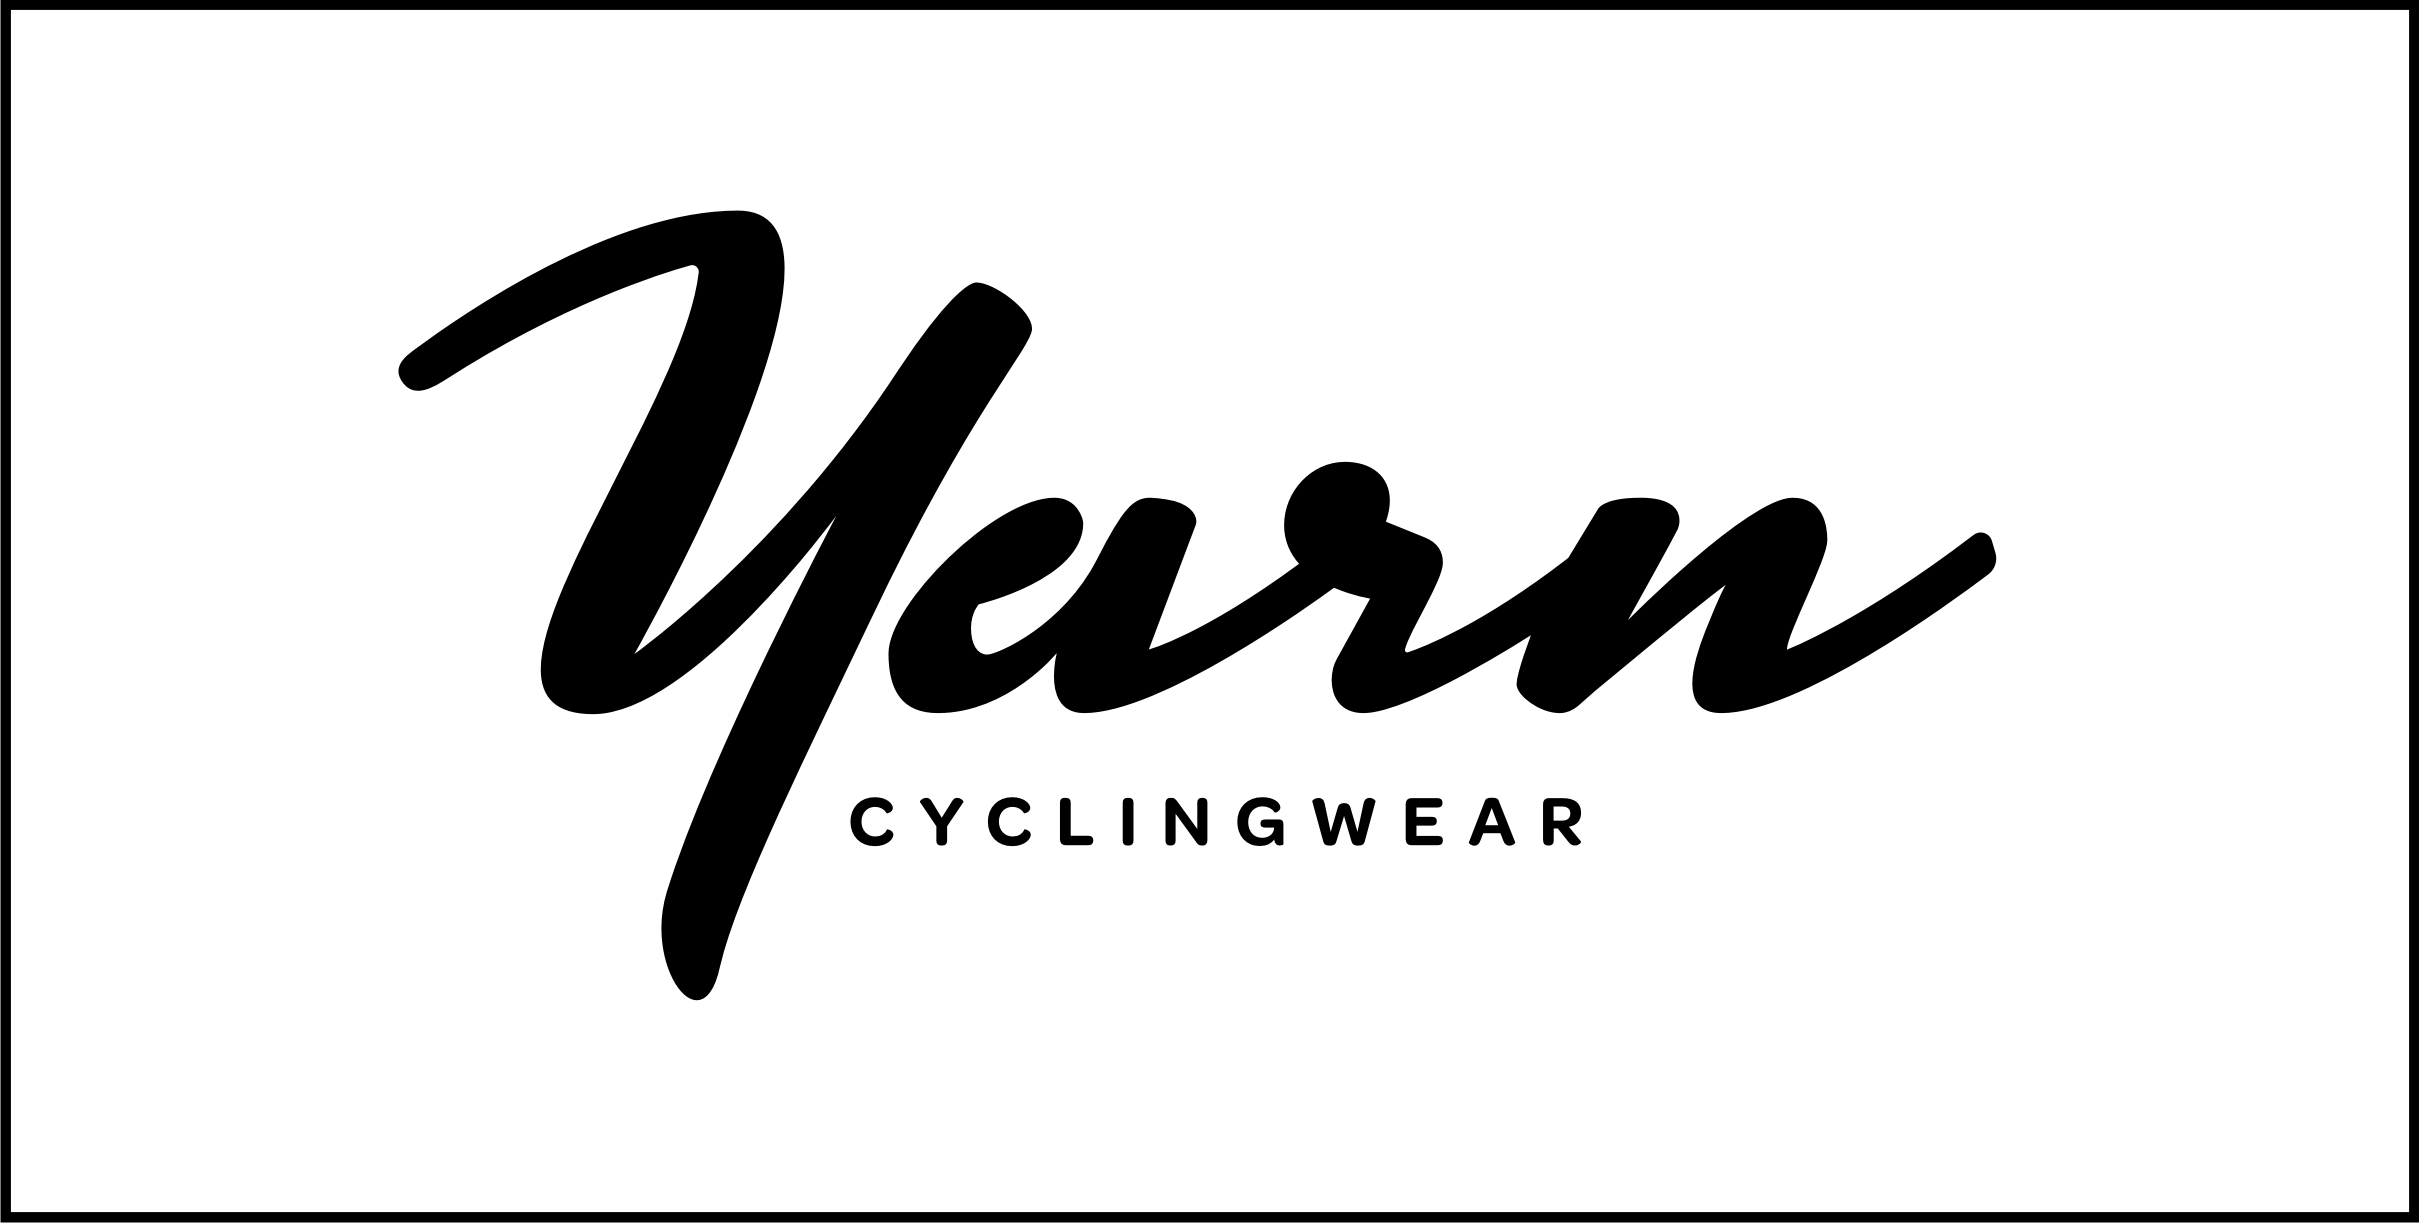 Yarn Cycling Wear